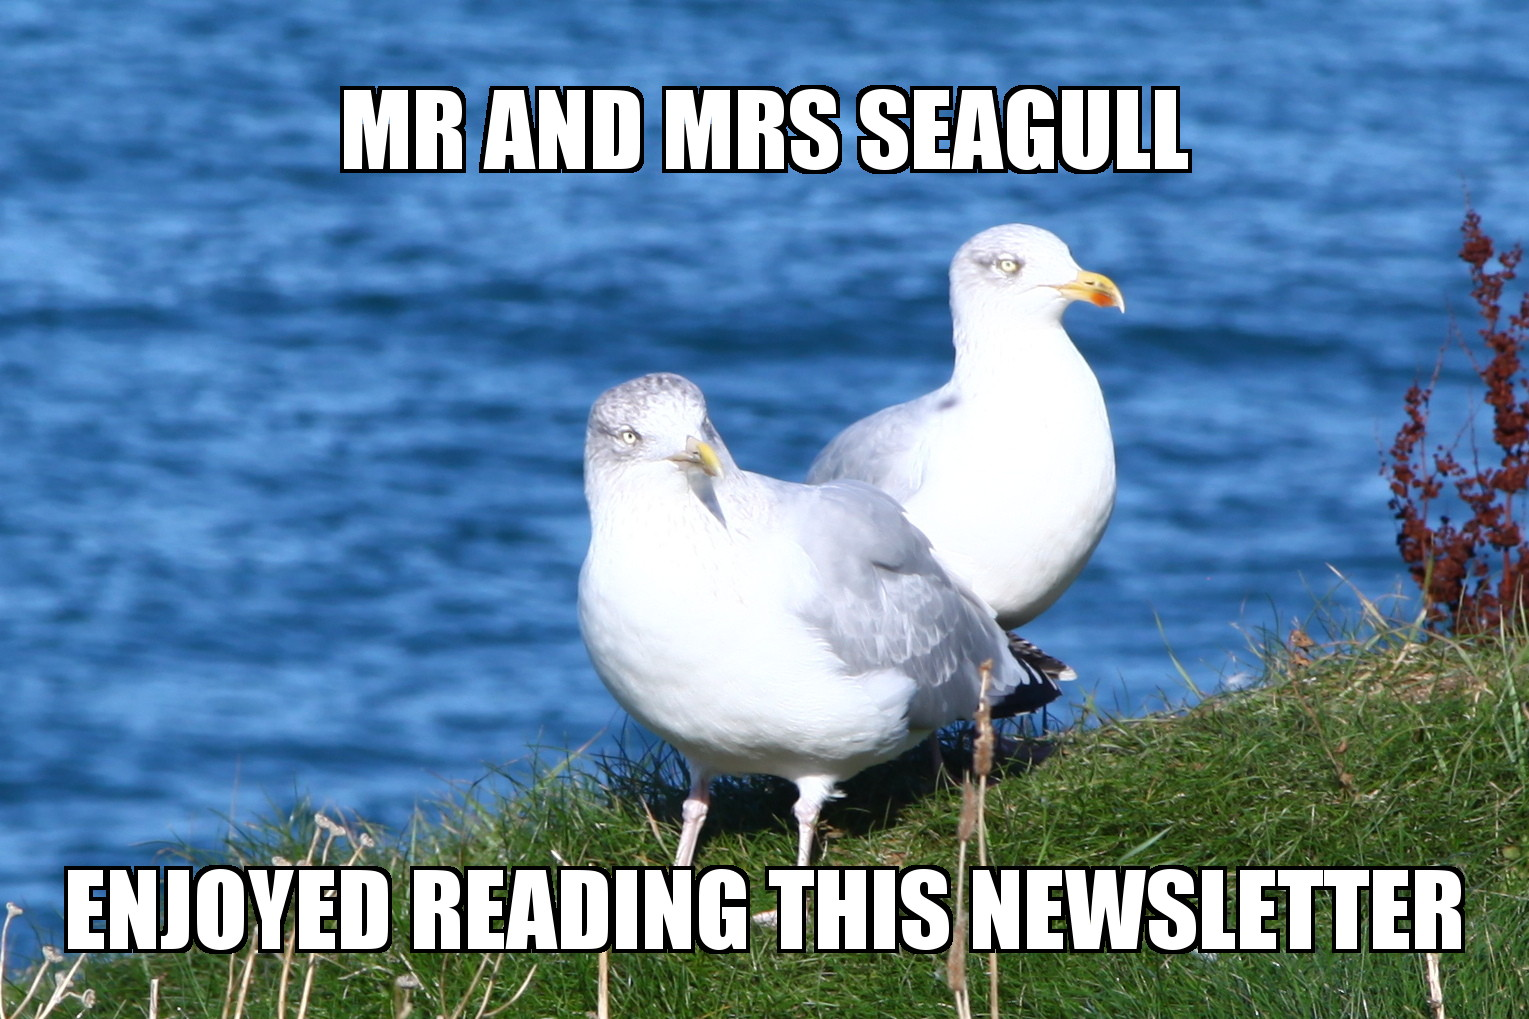 A pair of seagulls from Port Issac